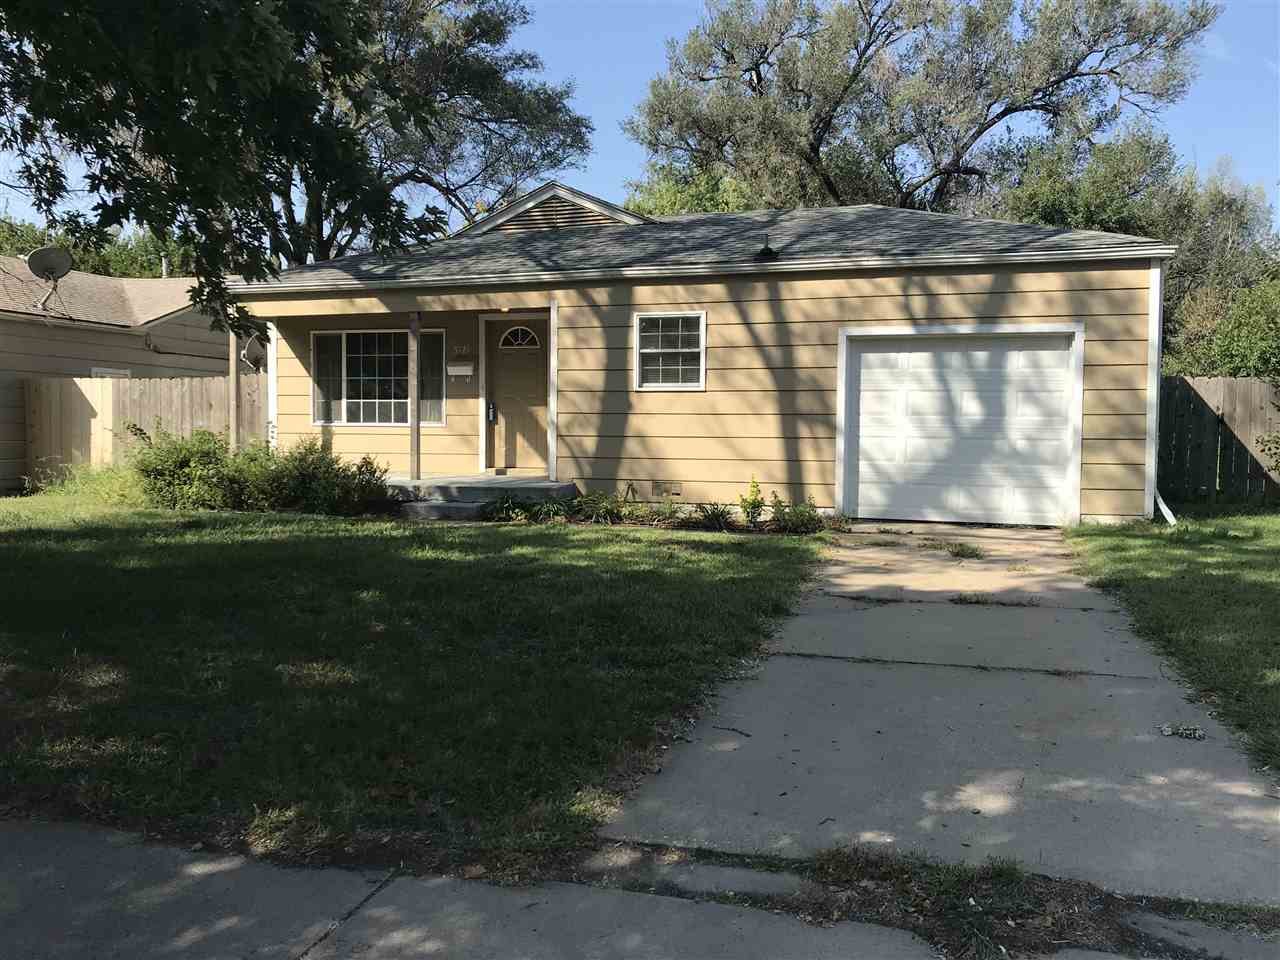 Nice 3 bedroom 1 bathroom with 1 car attached garage, hardwood floors through out, vinyl windows, ne